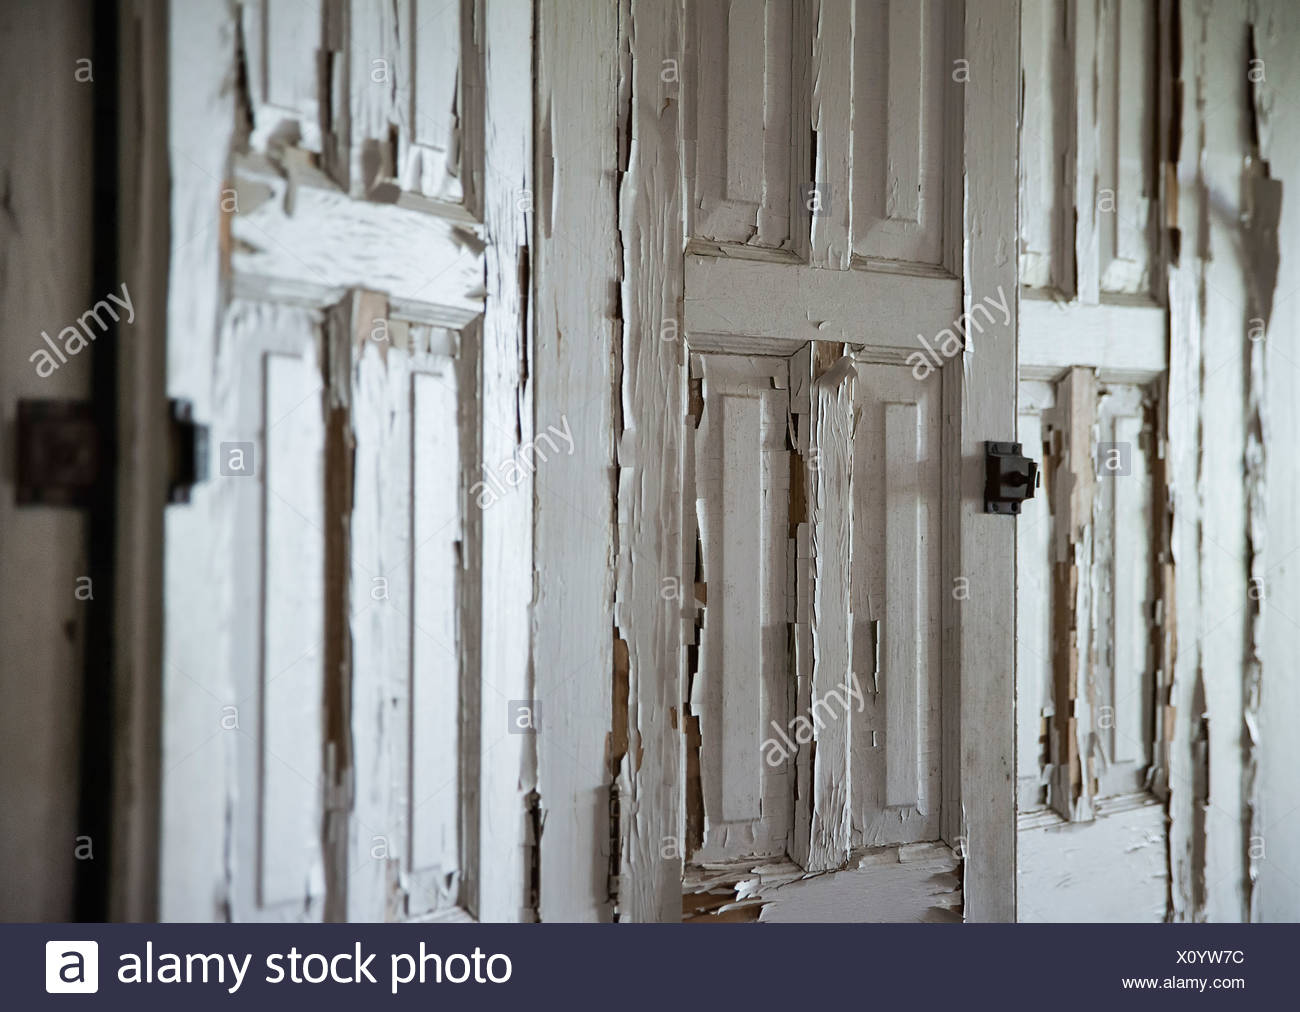 Neglected cabinets with peeling paint. - Stock Image